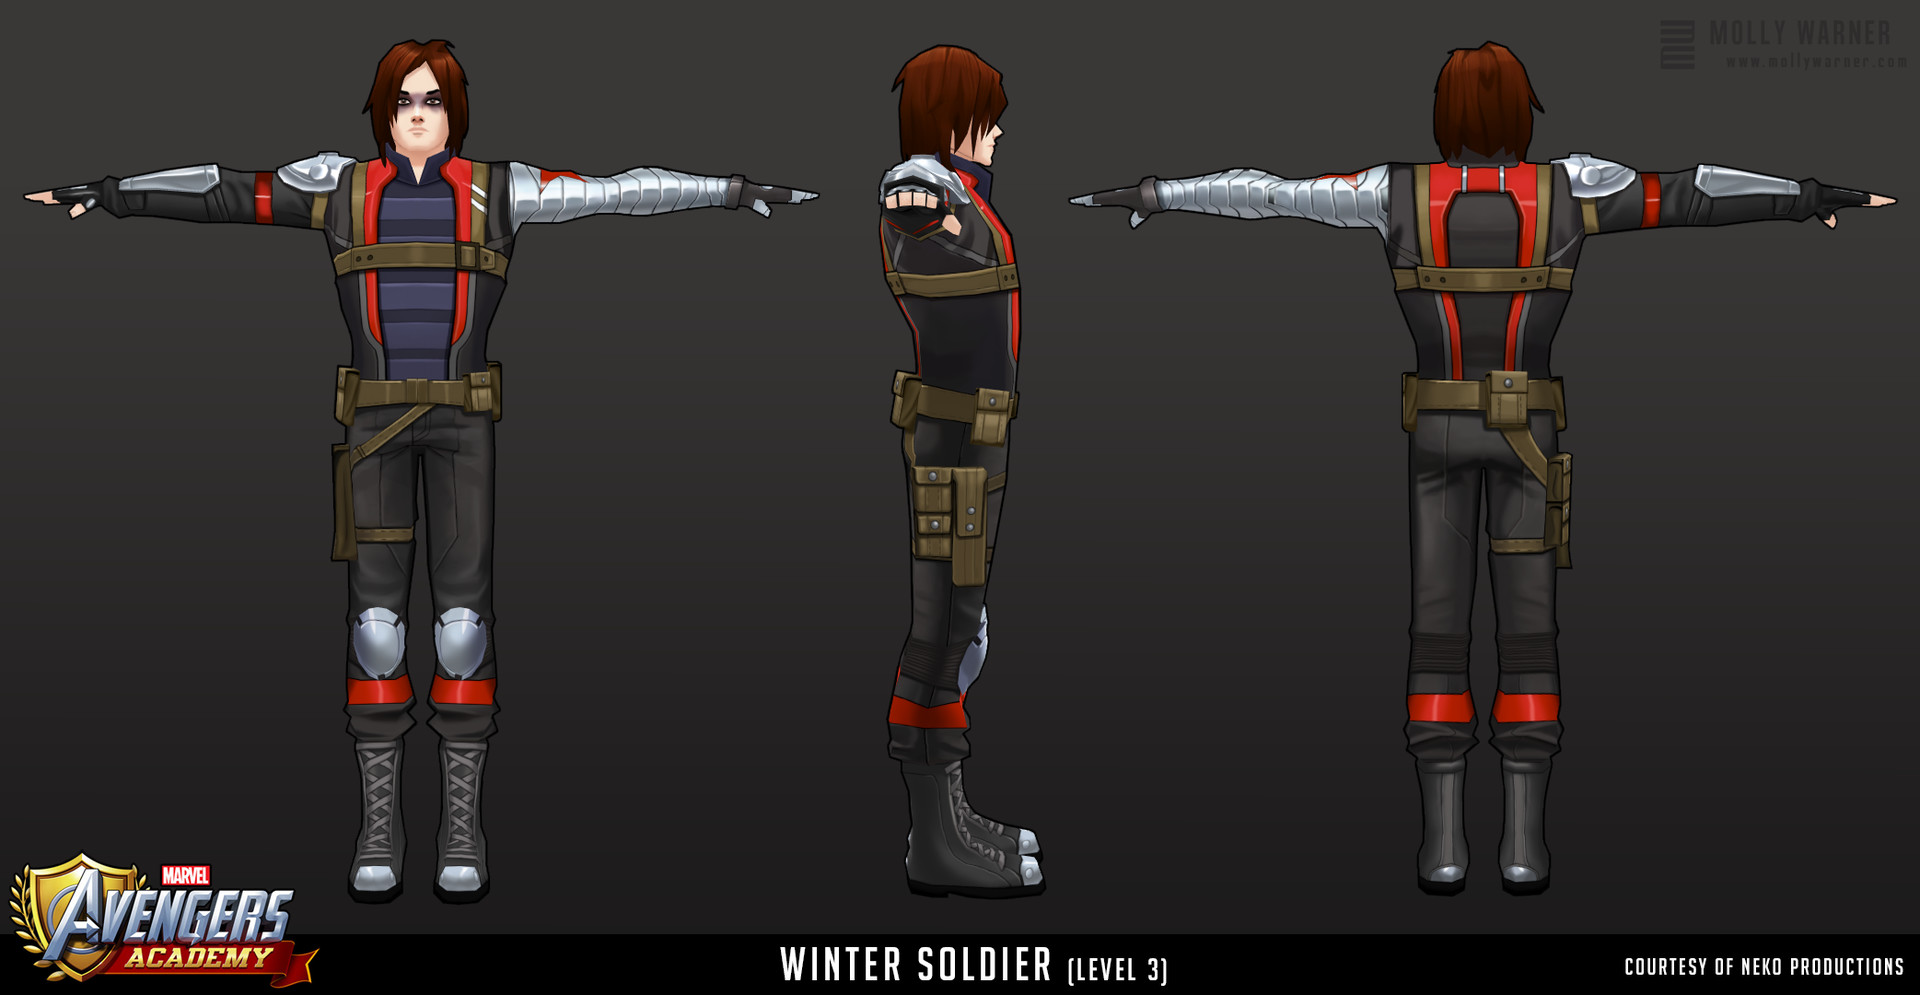 Molly warner 14 avengers academy wintersoldier l3